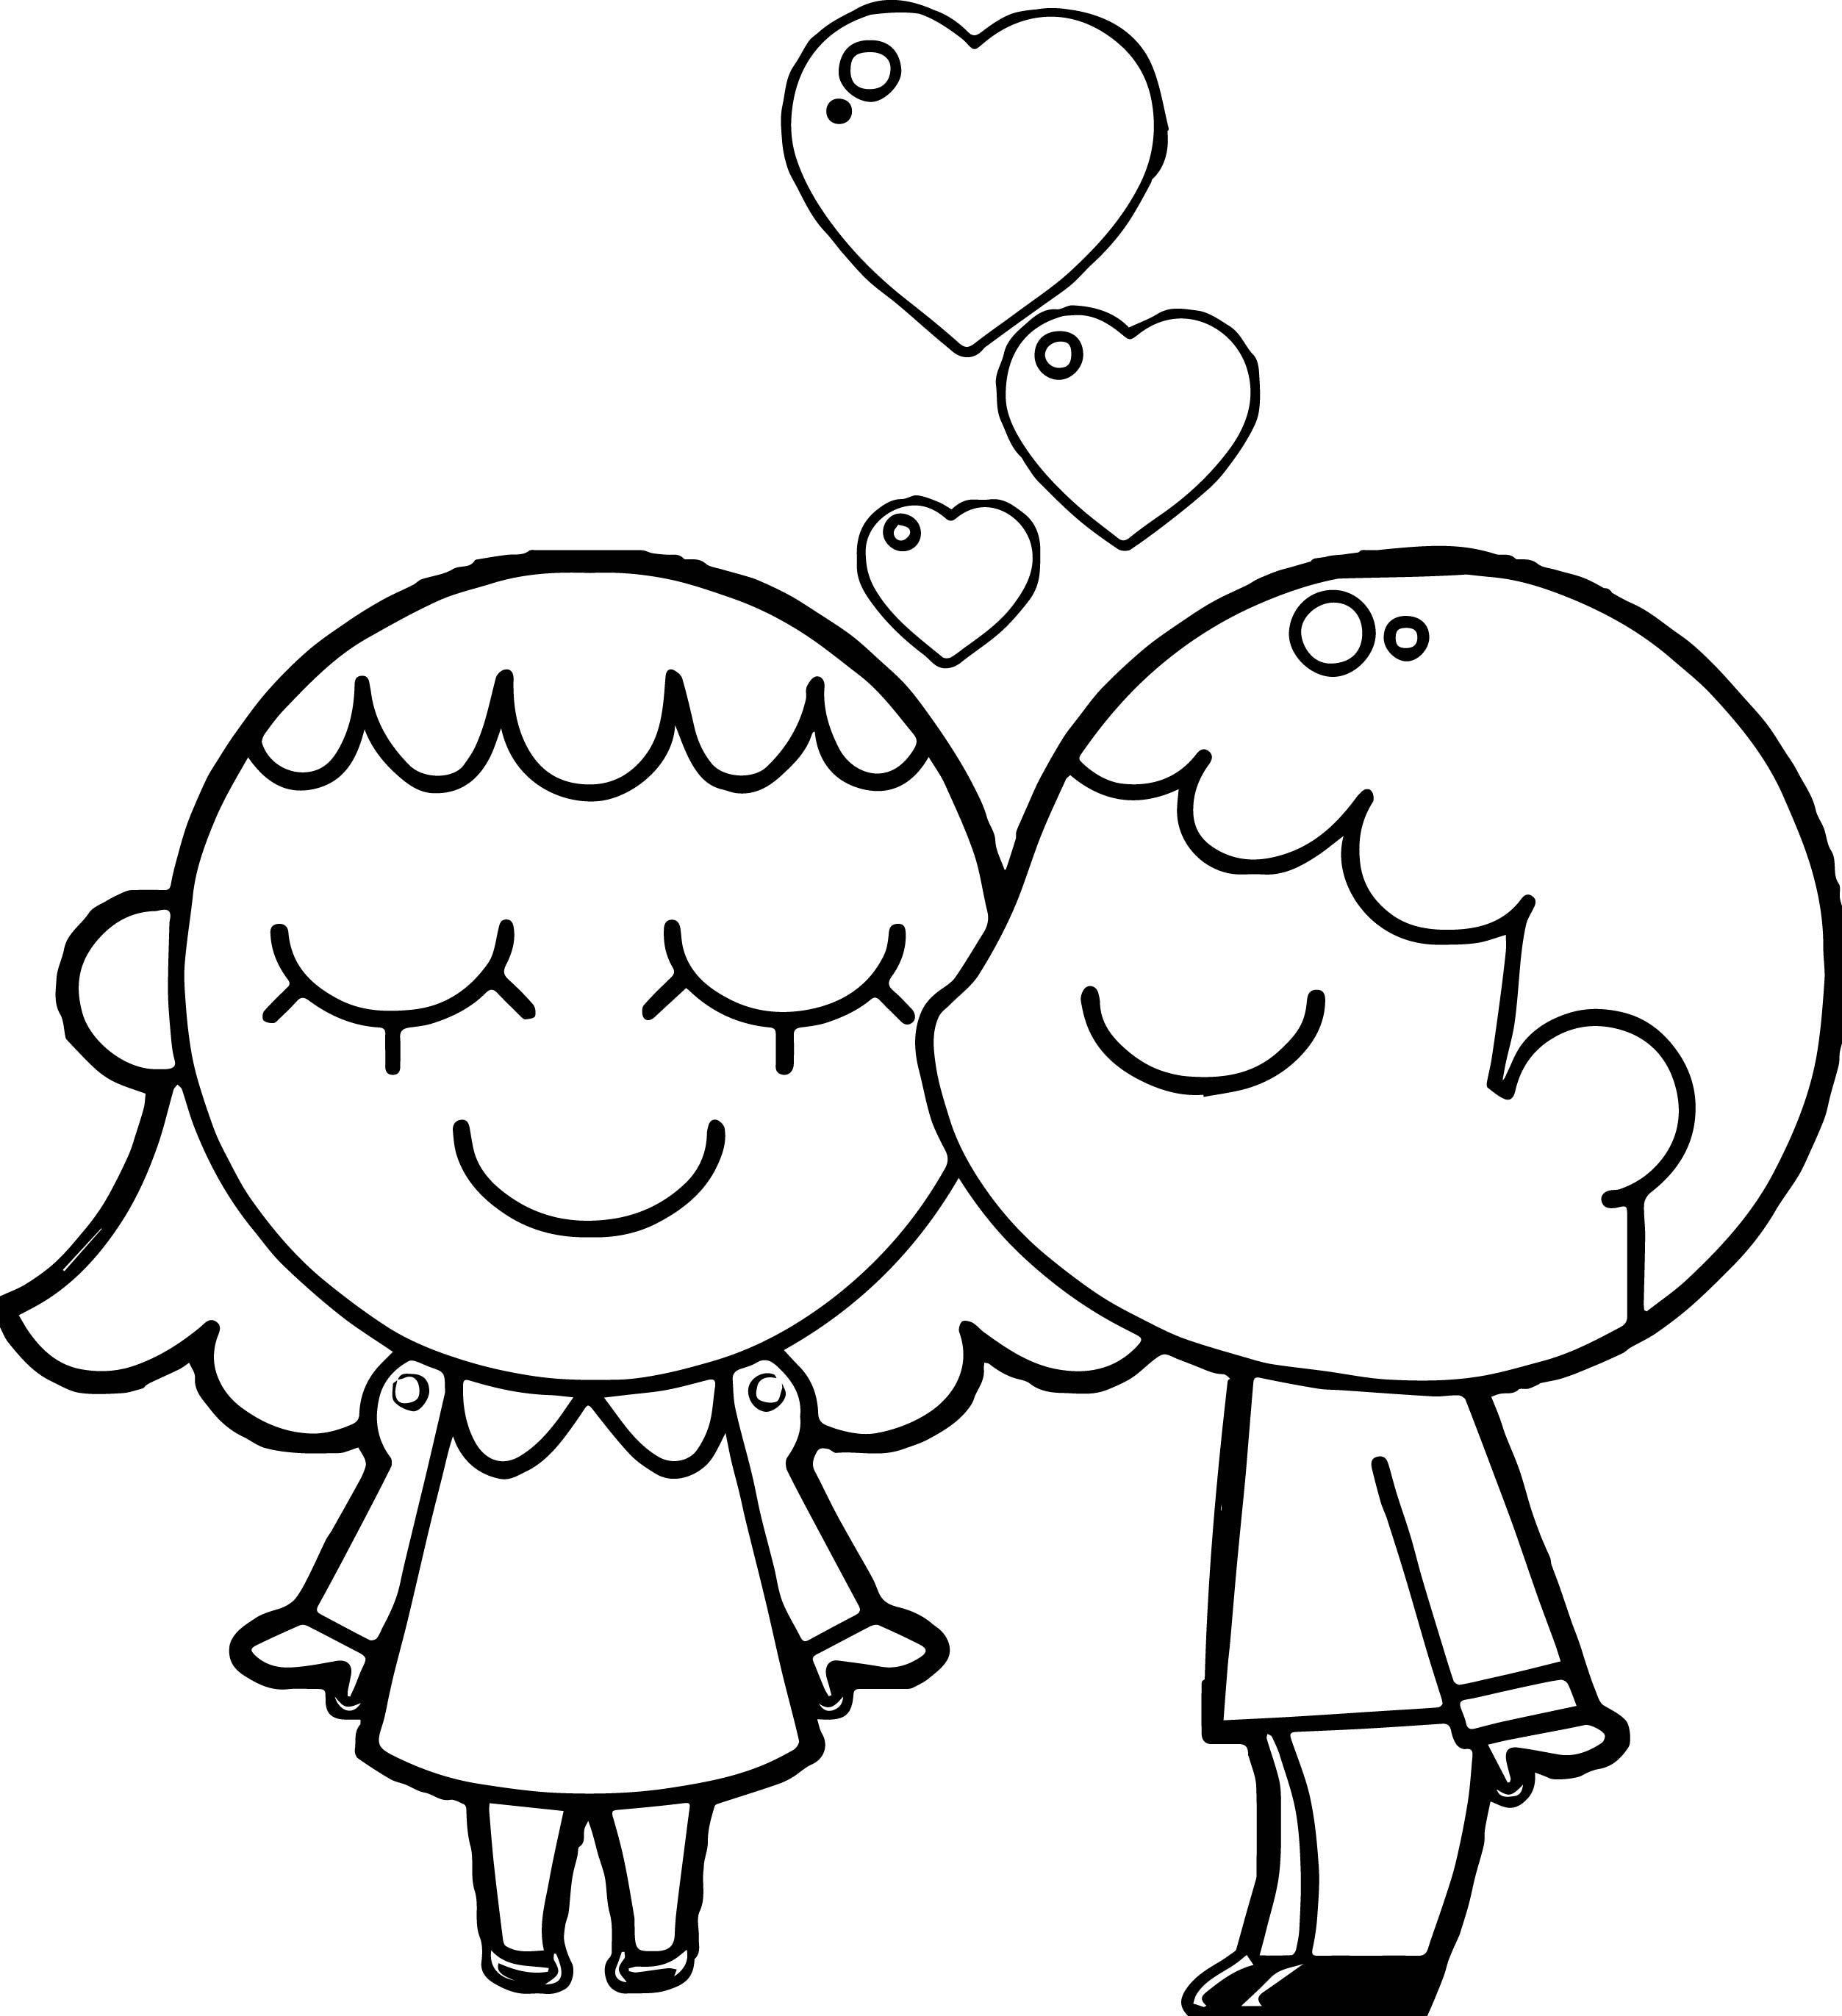 Cool Best Friends Boy And Girl Coloring Page Coloring Pages For